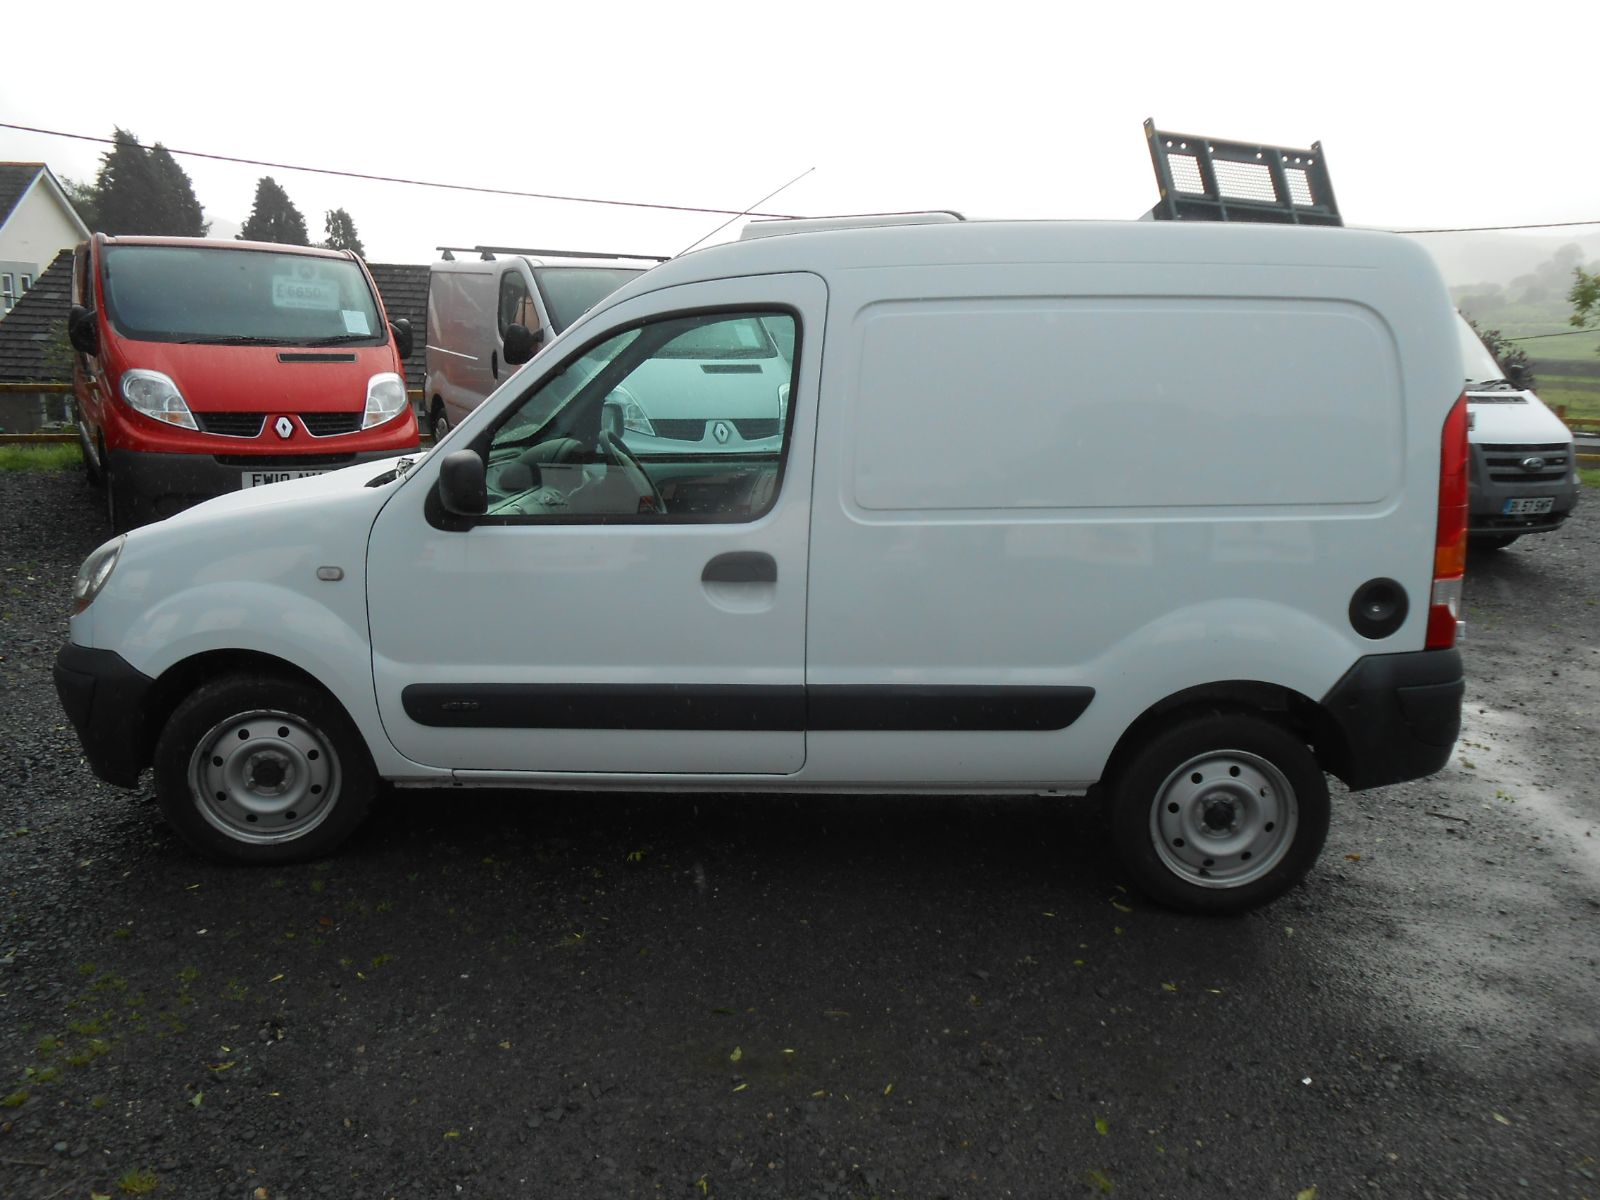 renault kangoo 1 5 dci 70 sl17 car for sale llanidloes powys mid wales kevin jones cars used. Black Bedroom Furniture Sets. Home Design Ideas